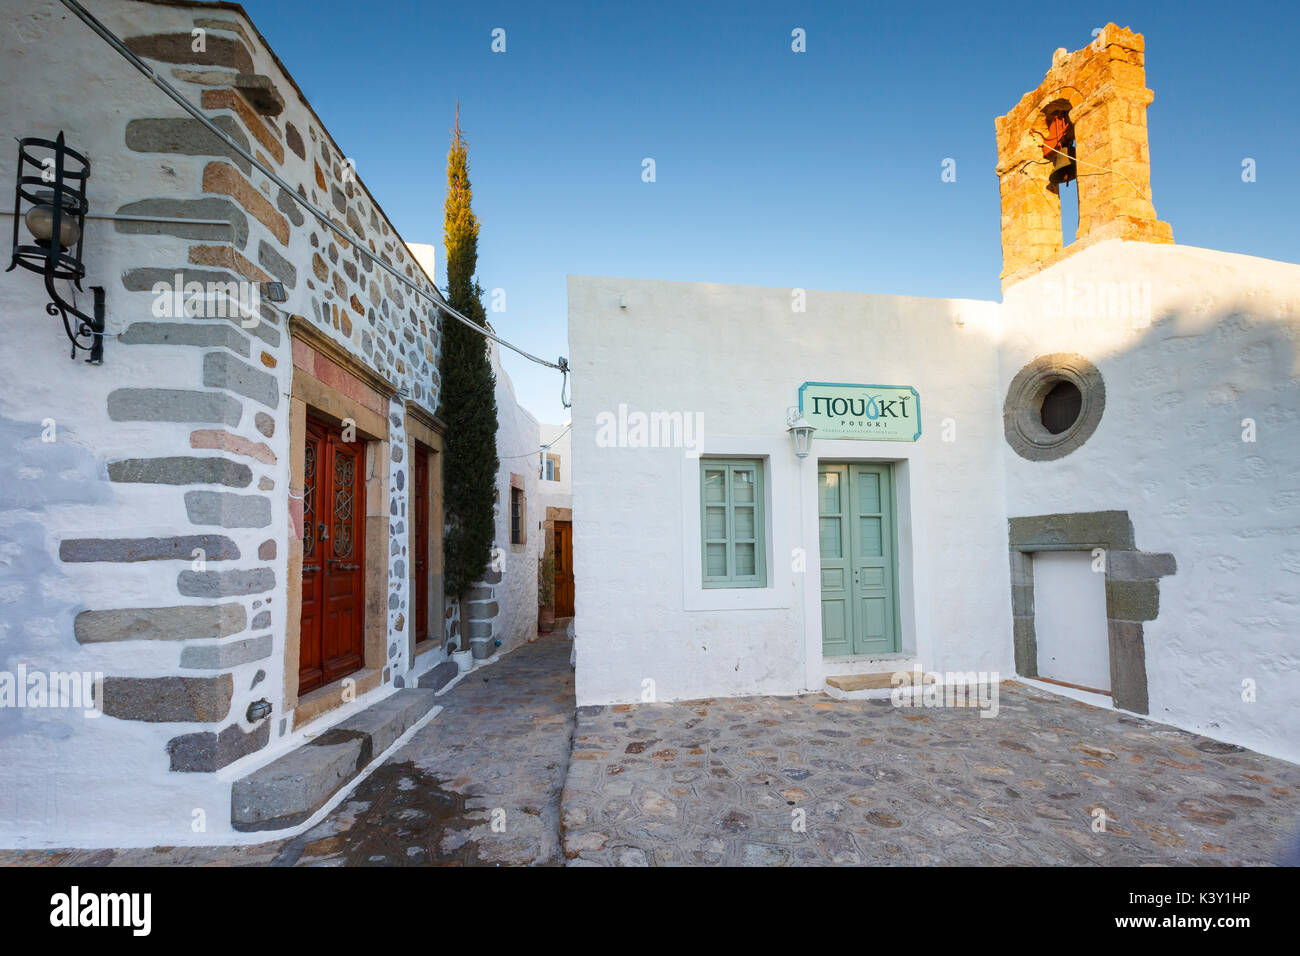 White architecture of Chora village on Patmos island in Greece. - Stock Image